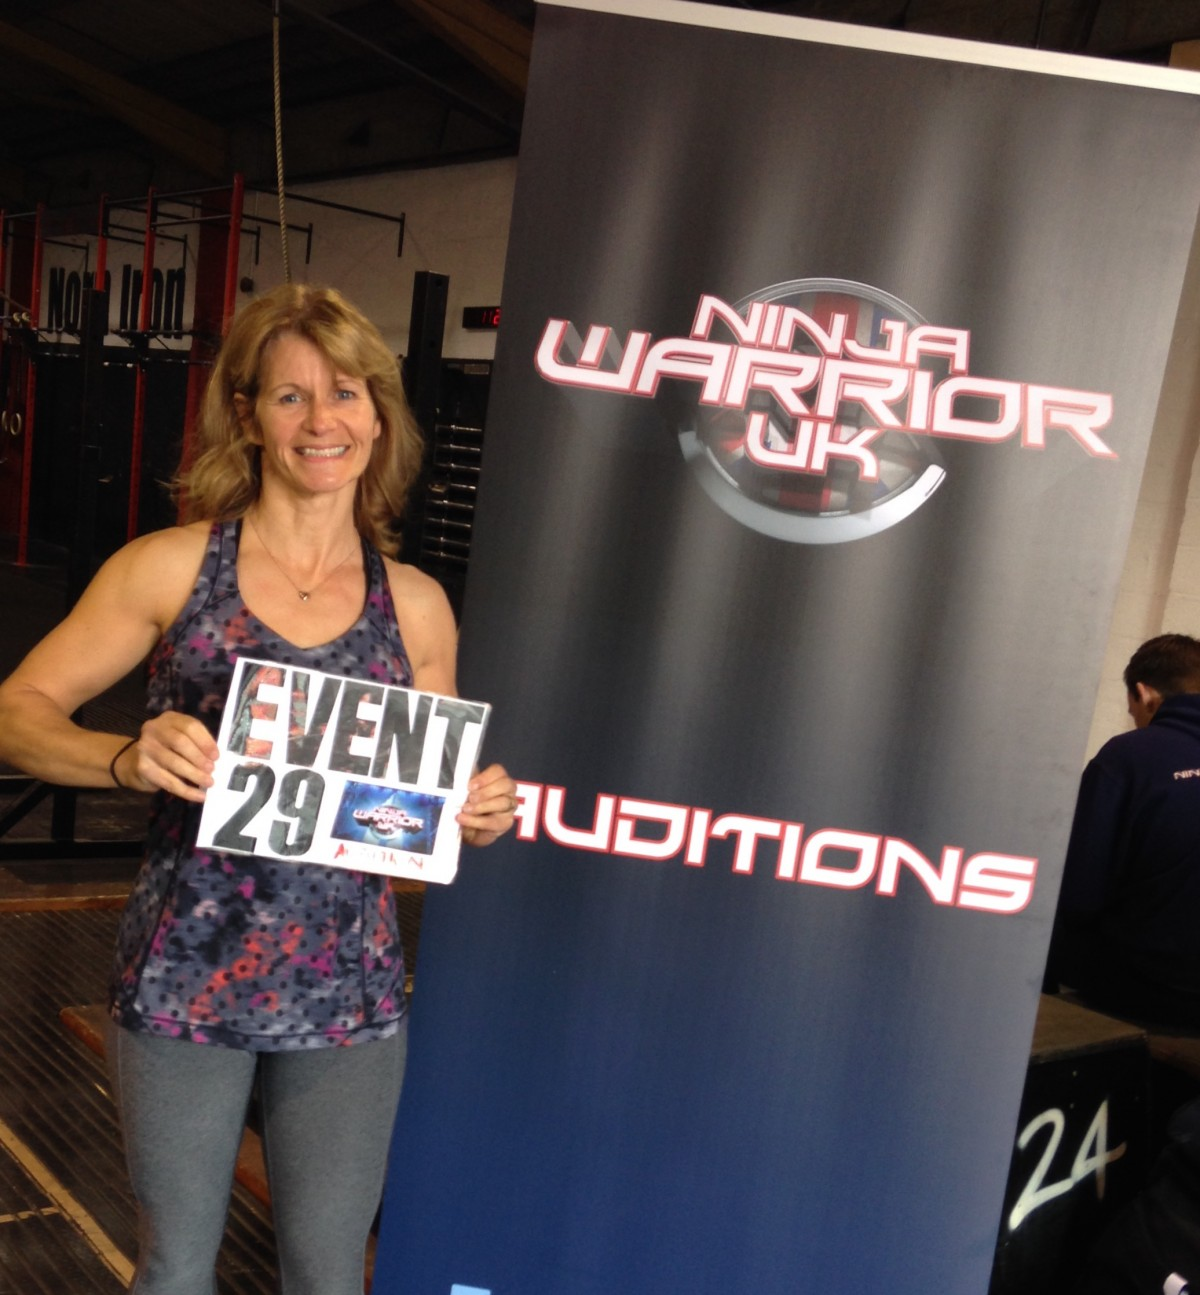 Workdays and Weekends - Cathy MacDonald Ninja Warrior